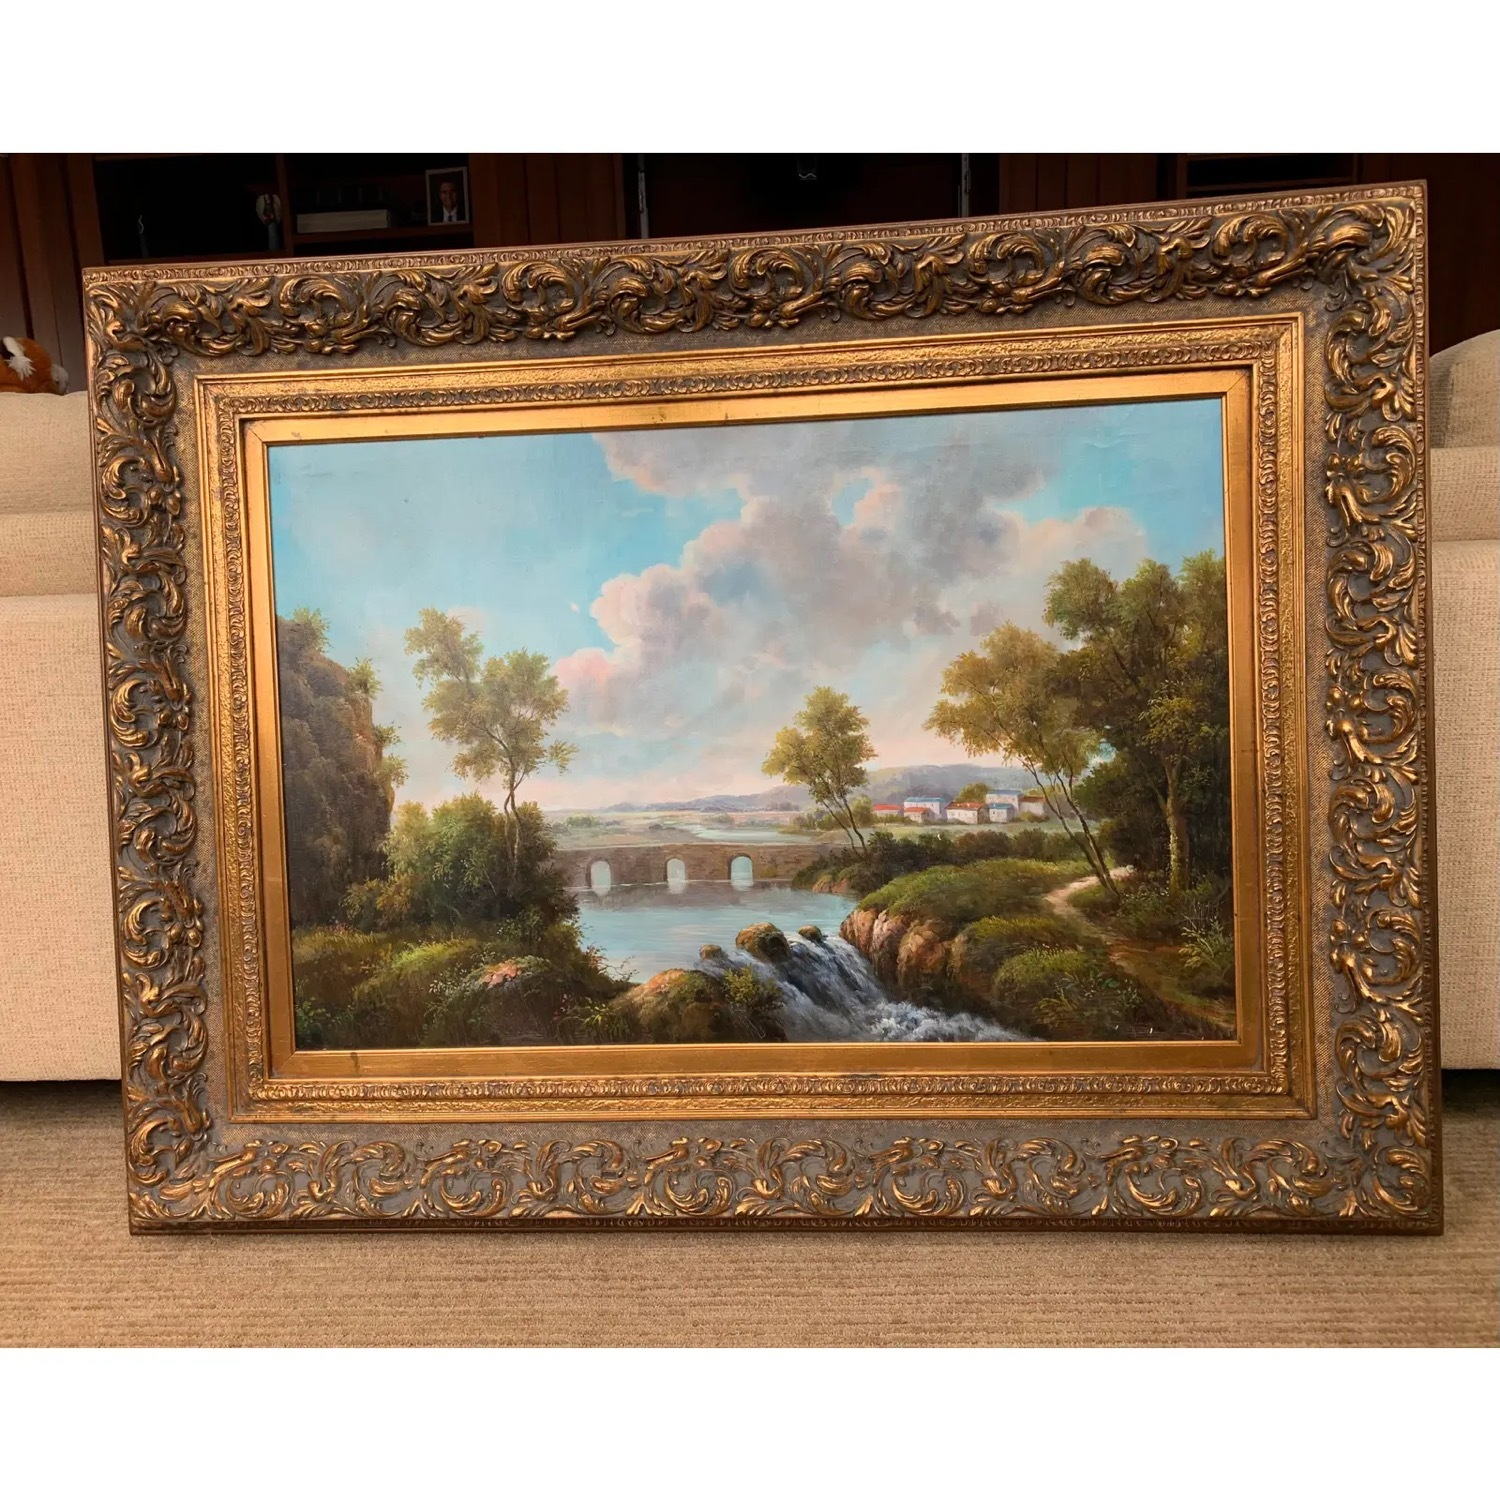 Framed Early 20th Century Oil Painting - G.Henson - image-2